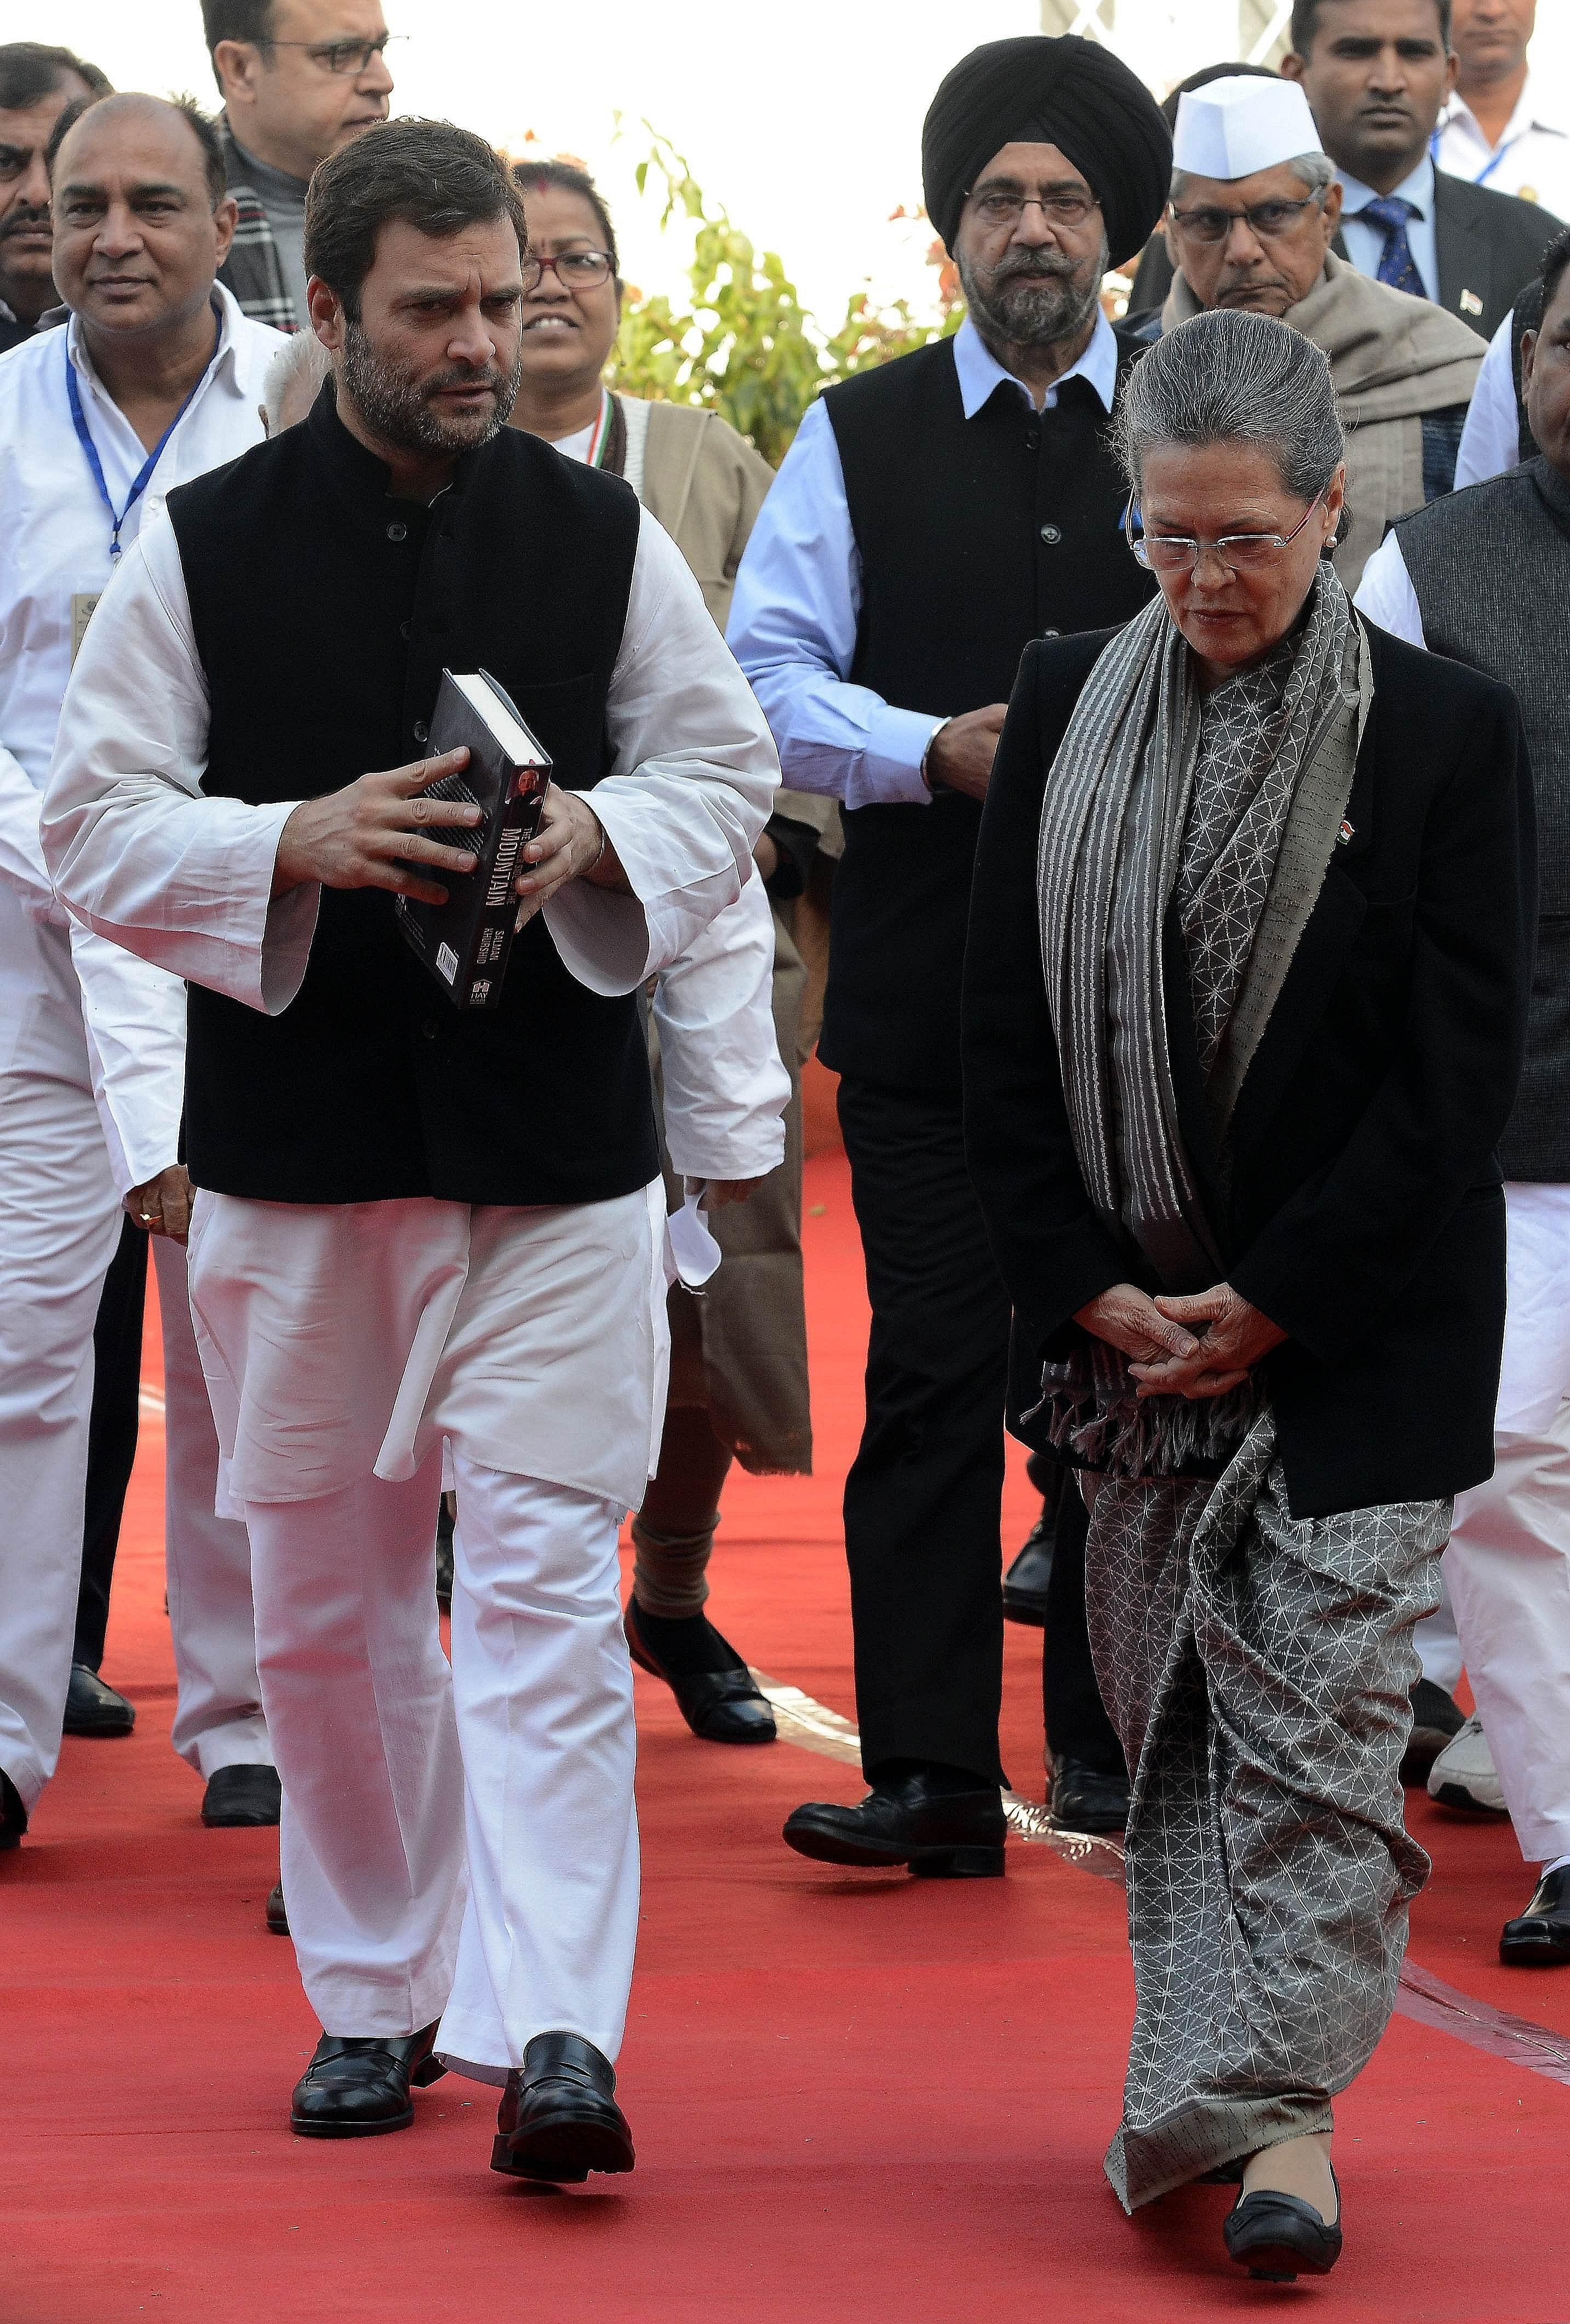 In a sign of what could be a blow to the dynastic system in India, Sonia Gandhi (left), president of the Congress party, and her son Rahul (far left), the party's vice-president, were forced to appear in court on corruption charges last month.